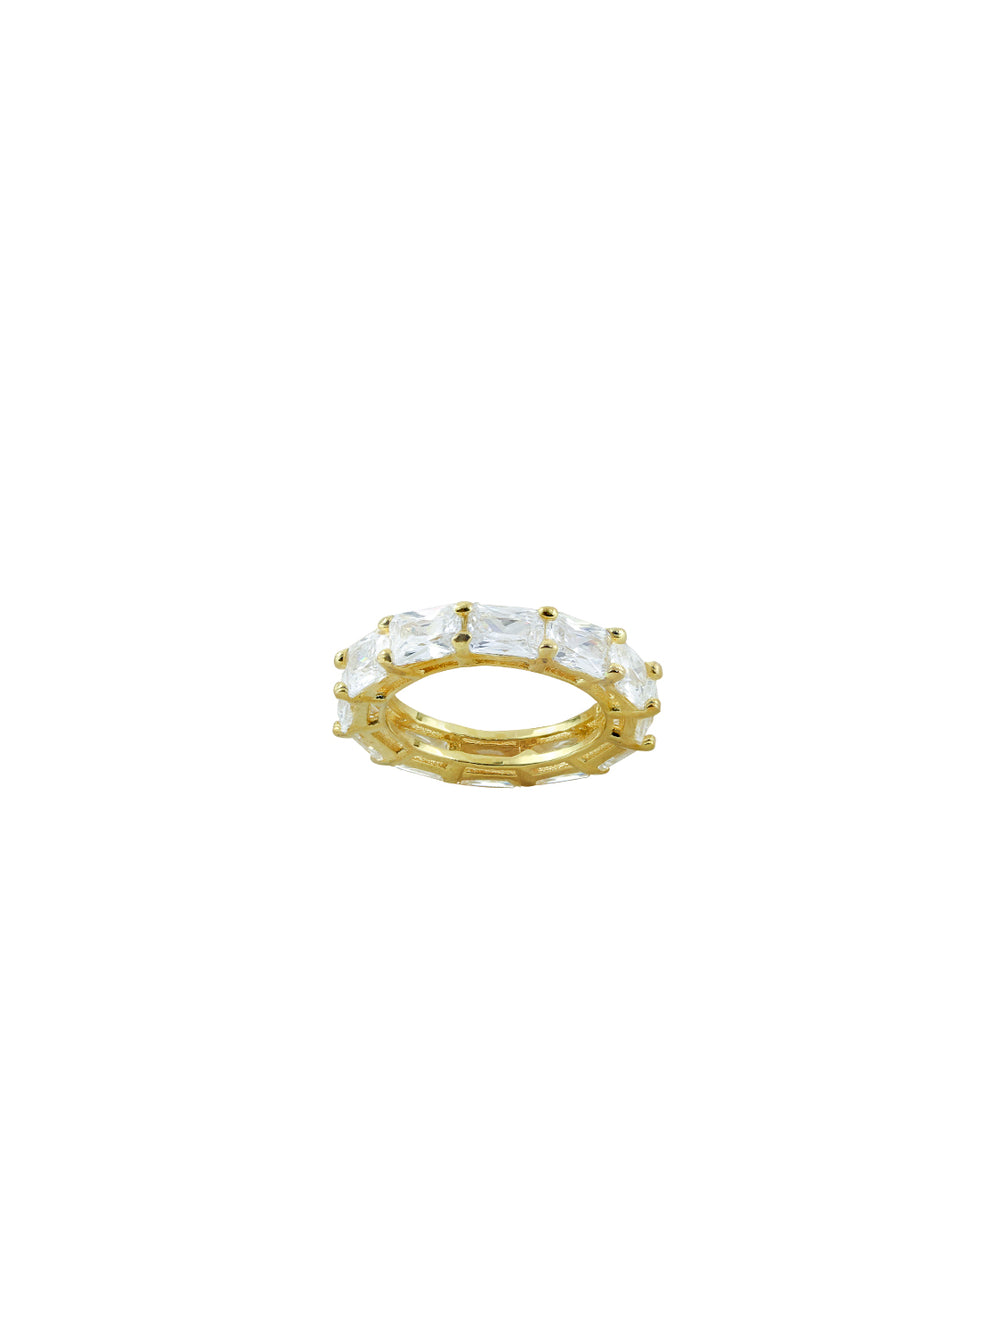 THE RADIANT ETERNITY BAND (CHAPTER II BY GREG YÜNA X THE M JEWELERS)